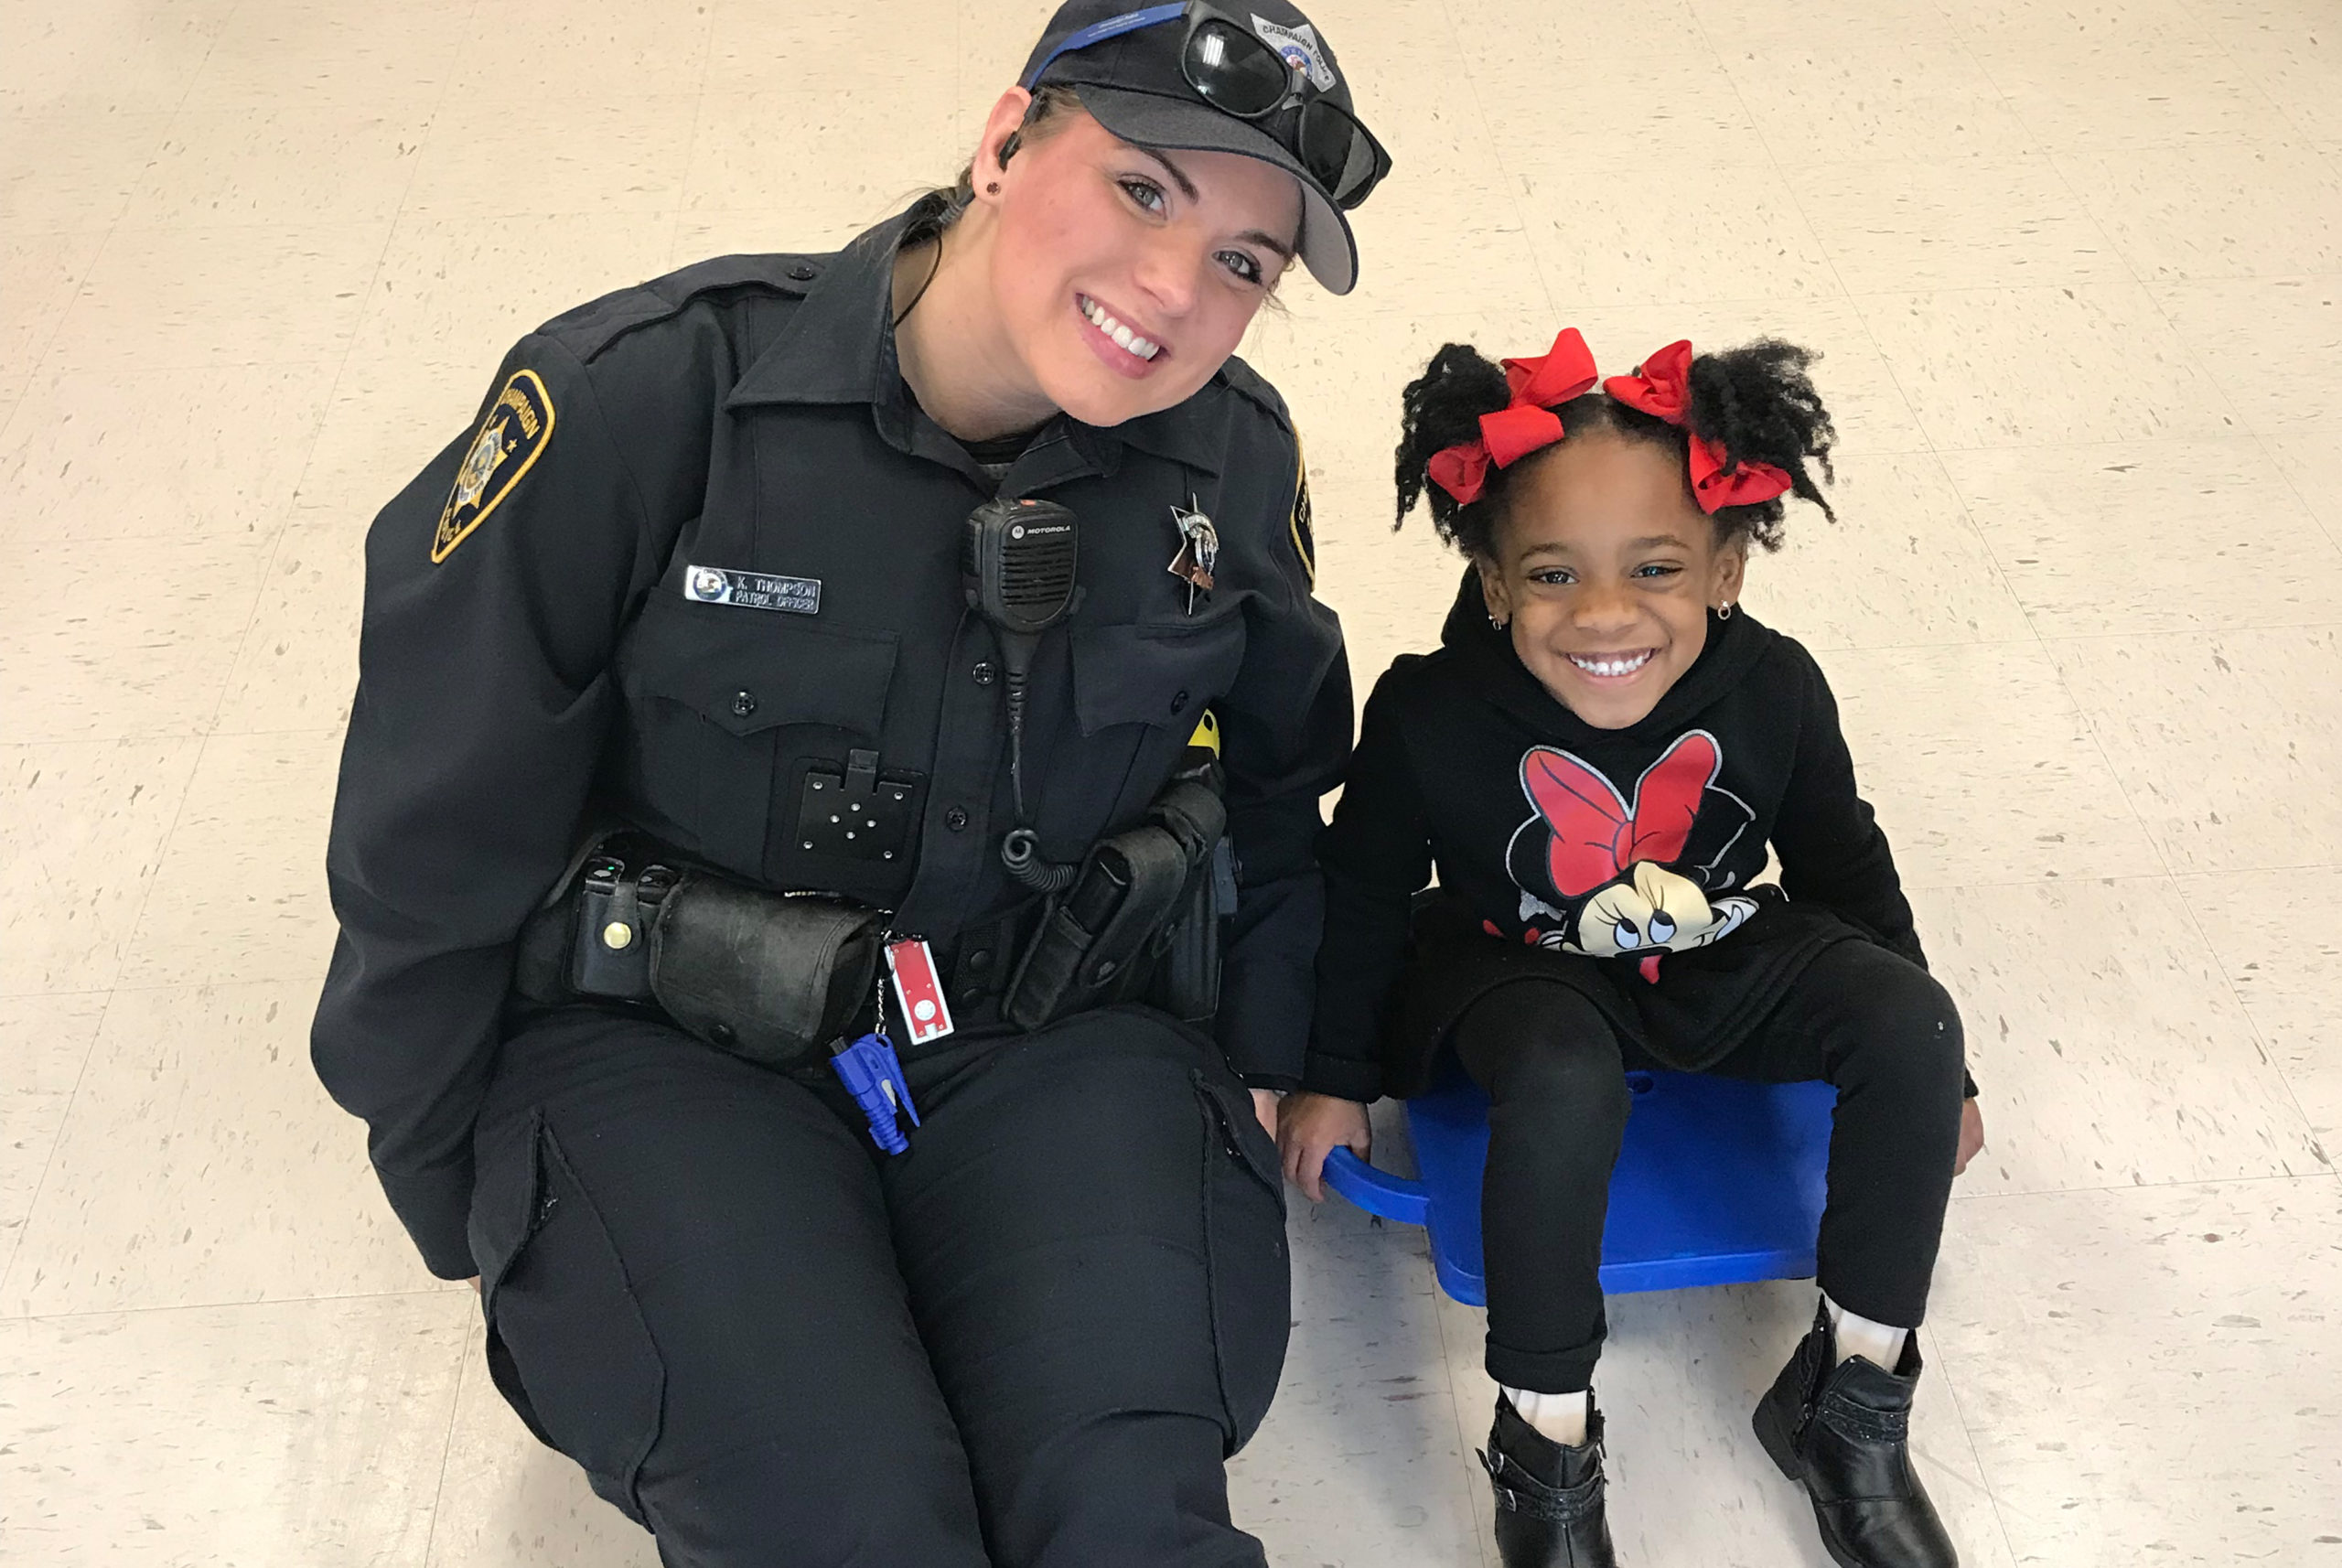 Police Officer with child